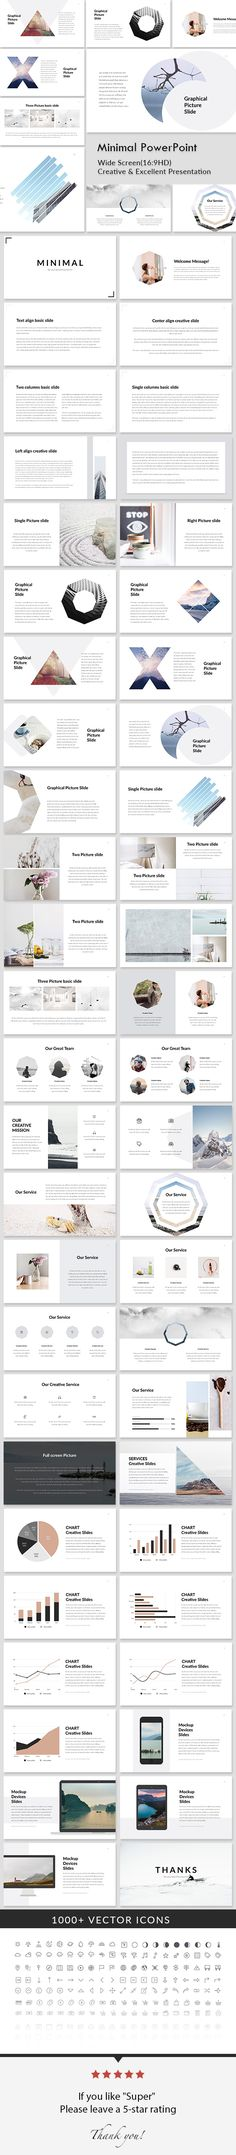 Minimal - Creative Powerpoint Presentation Template